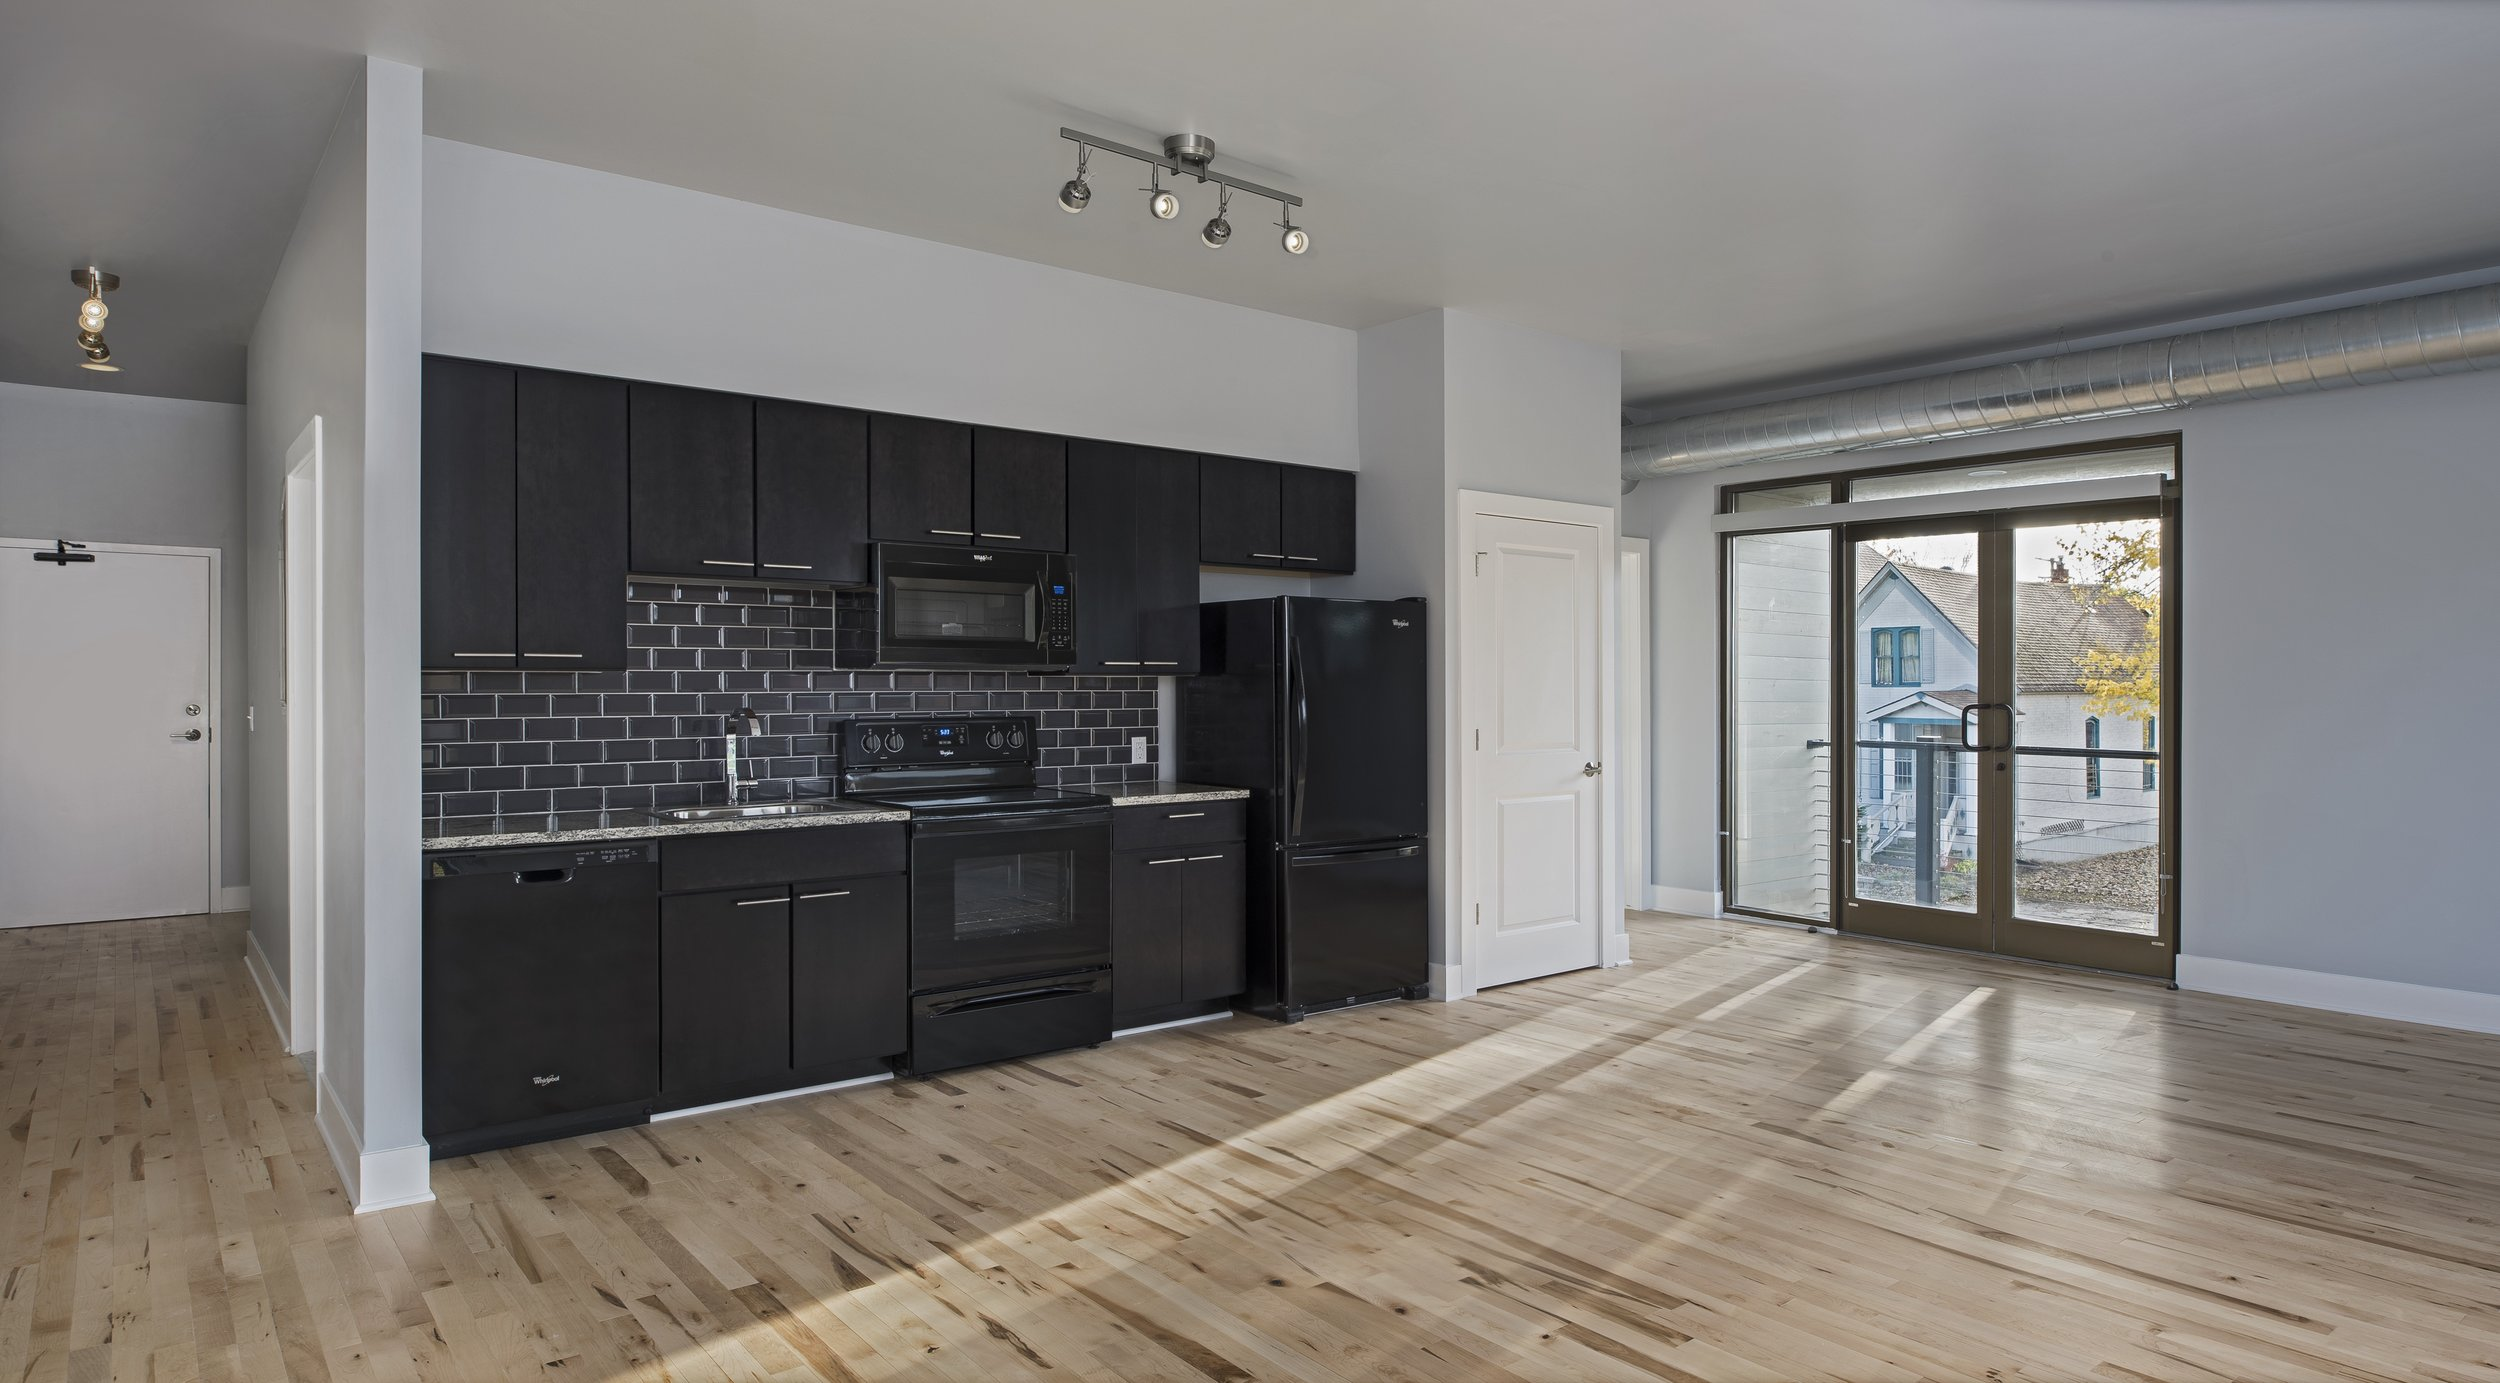 Apartment Kitchen and Living Room.jpg